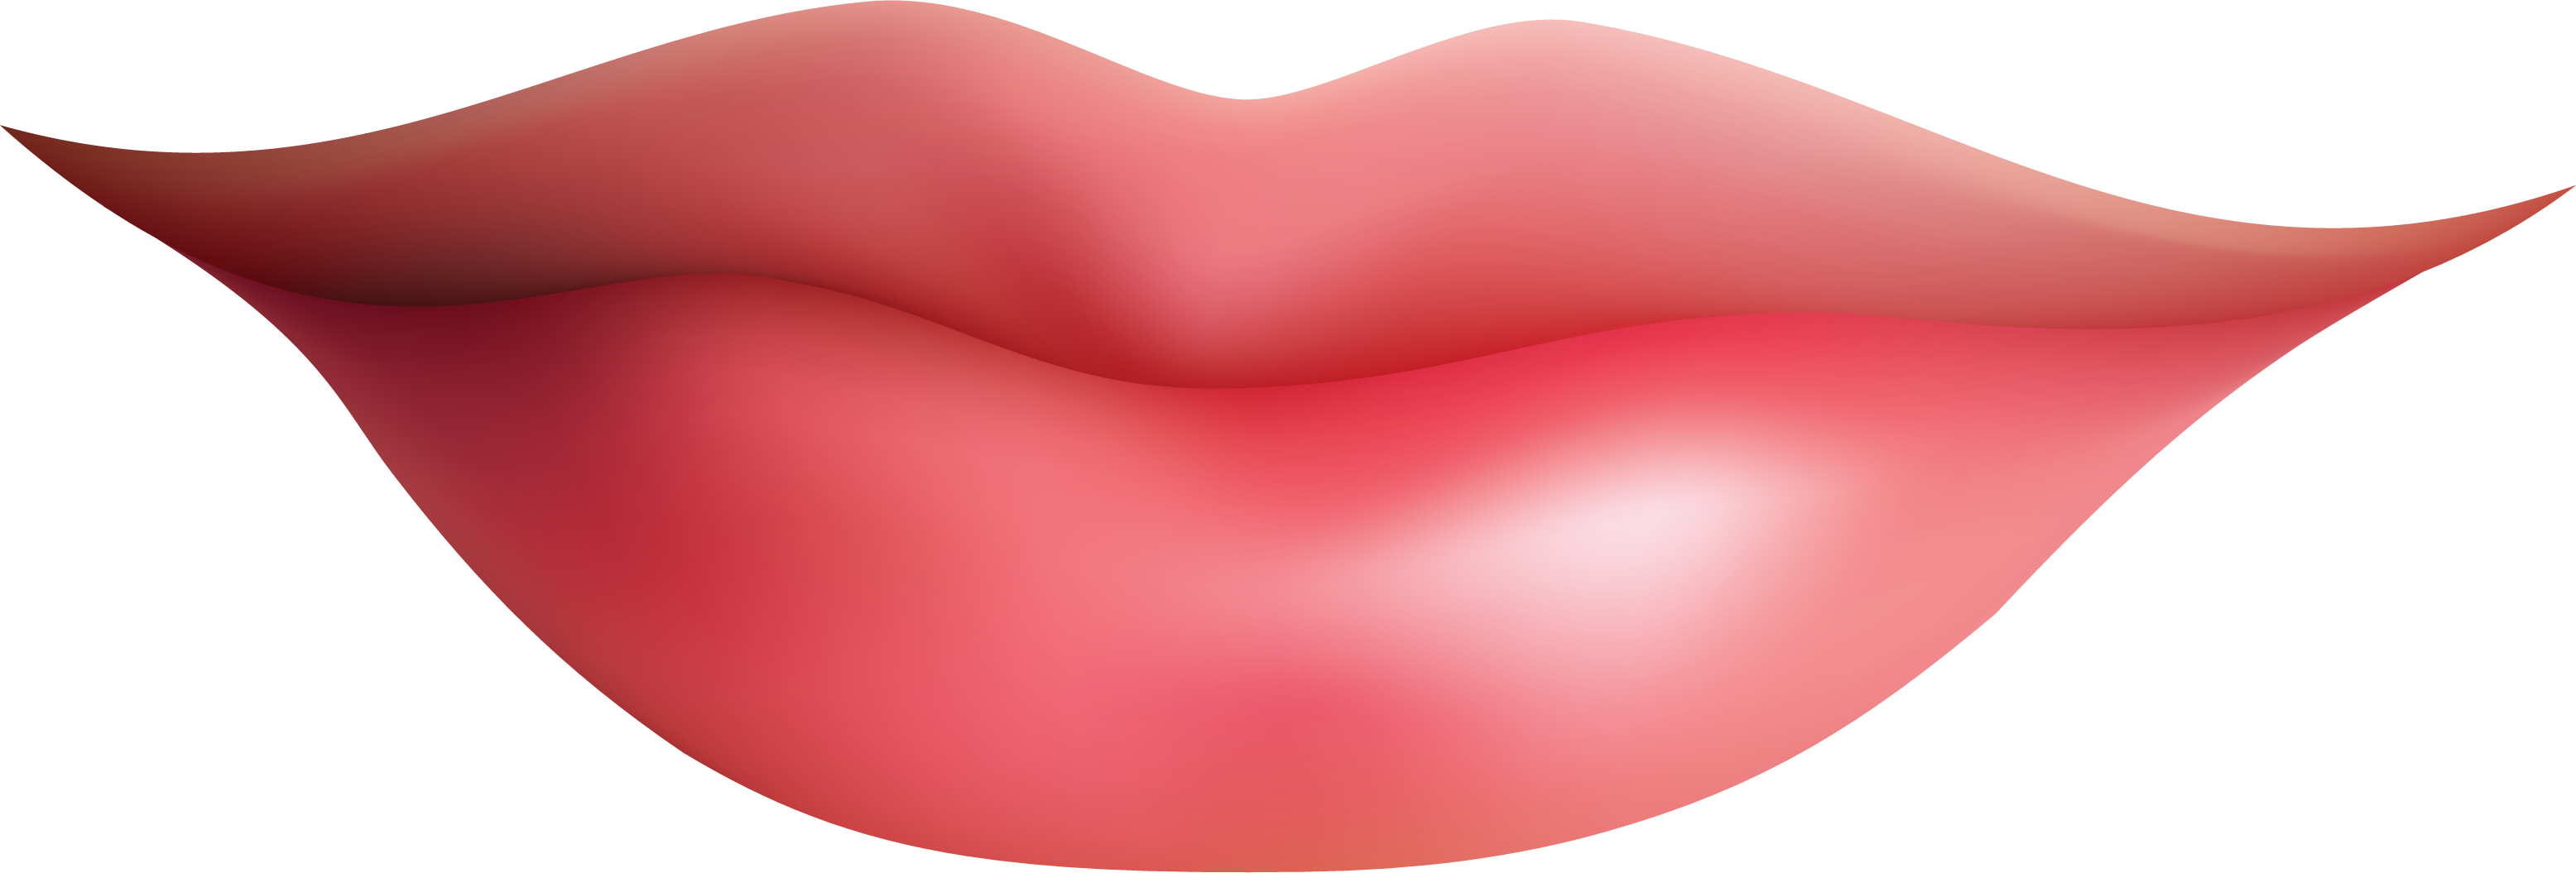 Png hd transparent images. Lips clipart colorful lip